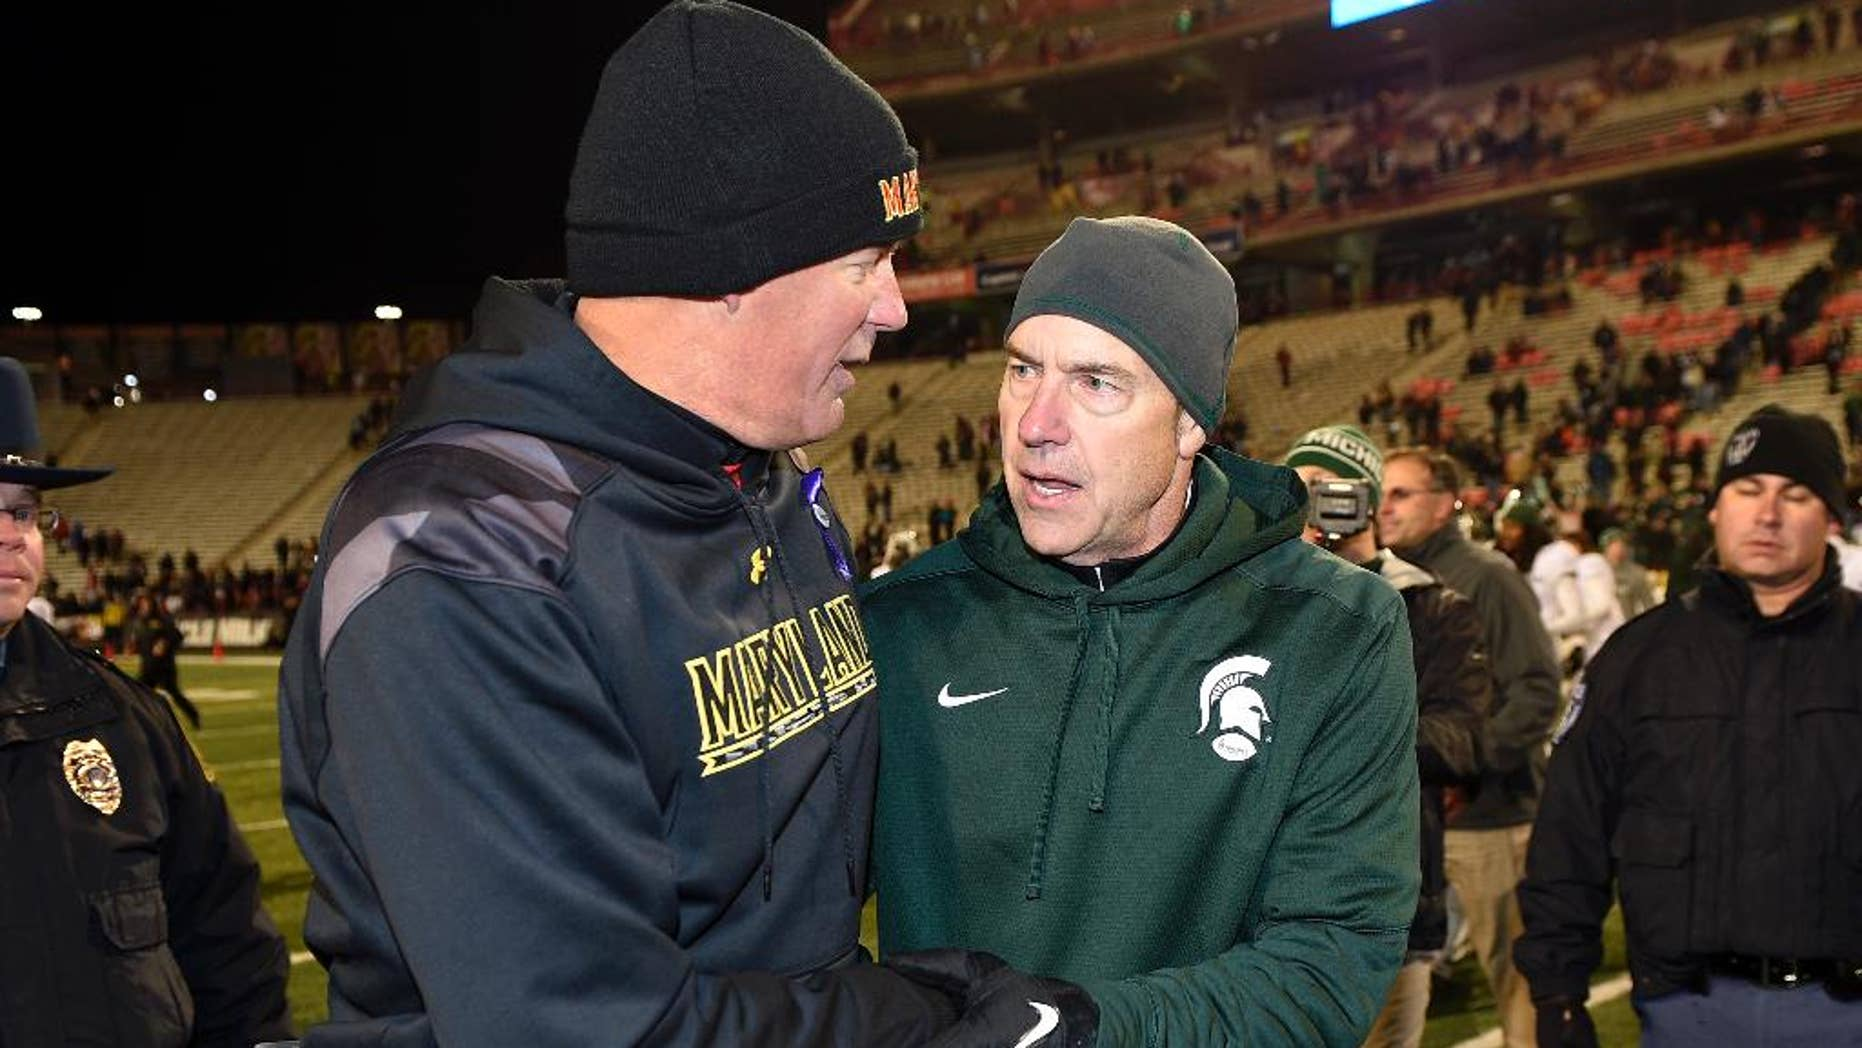 Michigan State coach Mark Dantonio, right, shakes hands with Maryland coach Randy Edsall, left, after an NCAA college football game, Saturday, Nov. 15, 2014, in College Park, Md. Michigan State won 37-15. (AP Photo/Nick Wass)